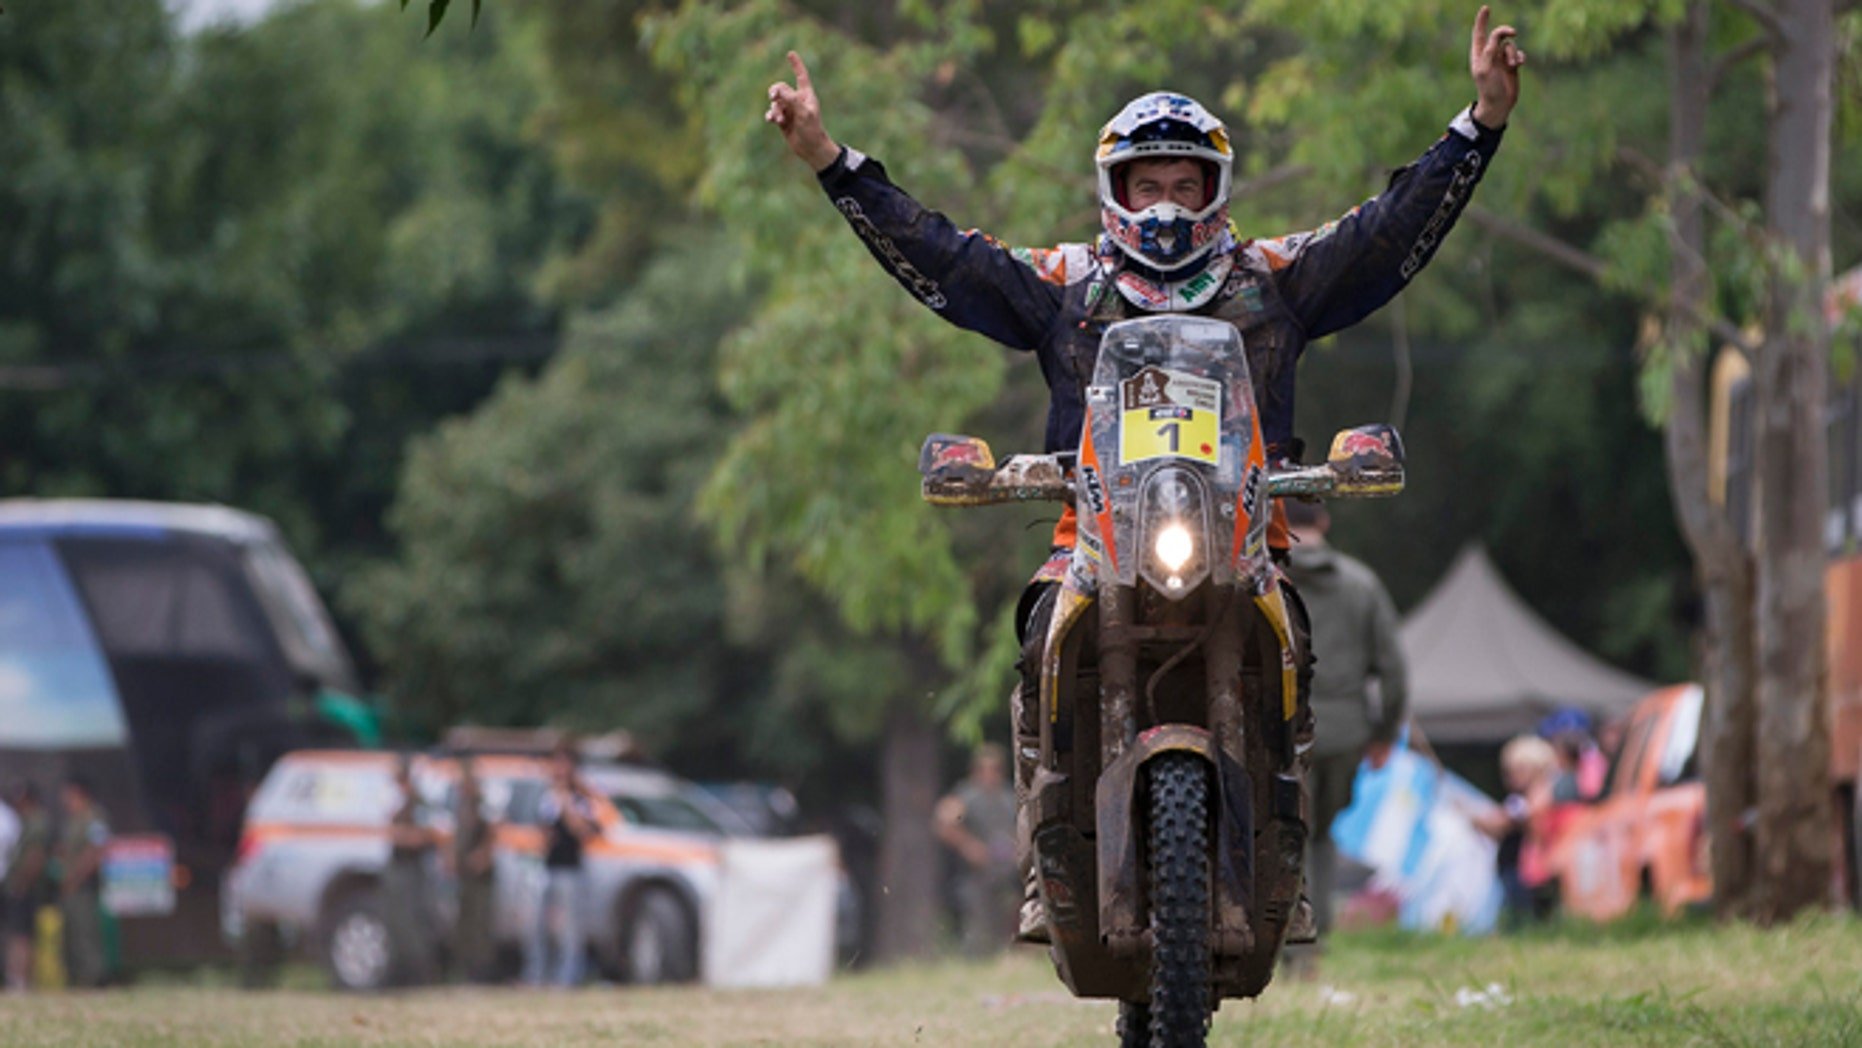 KTM rider Marc Coma of Spain celebrates after winning the Dakar Rally 2015 motorcycle category, at the end of twelfth stage in Buenos Aires, Argentina, Saturday, Jan. 17, 2015. (AP Photo/Felipe Dana)